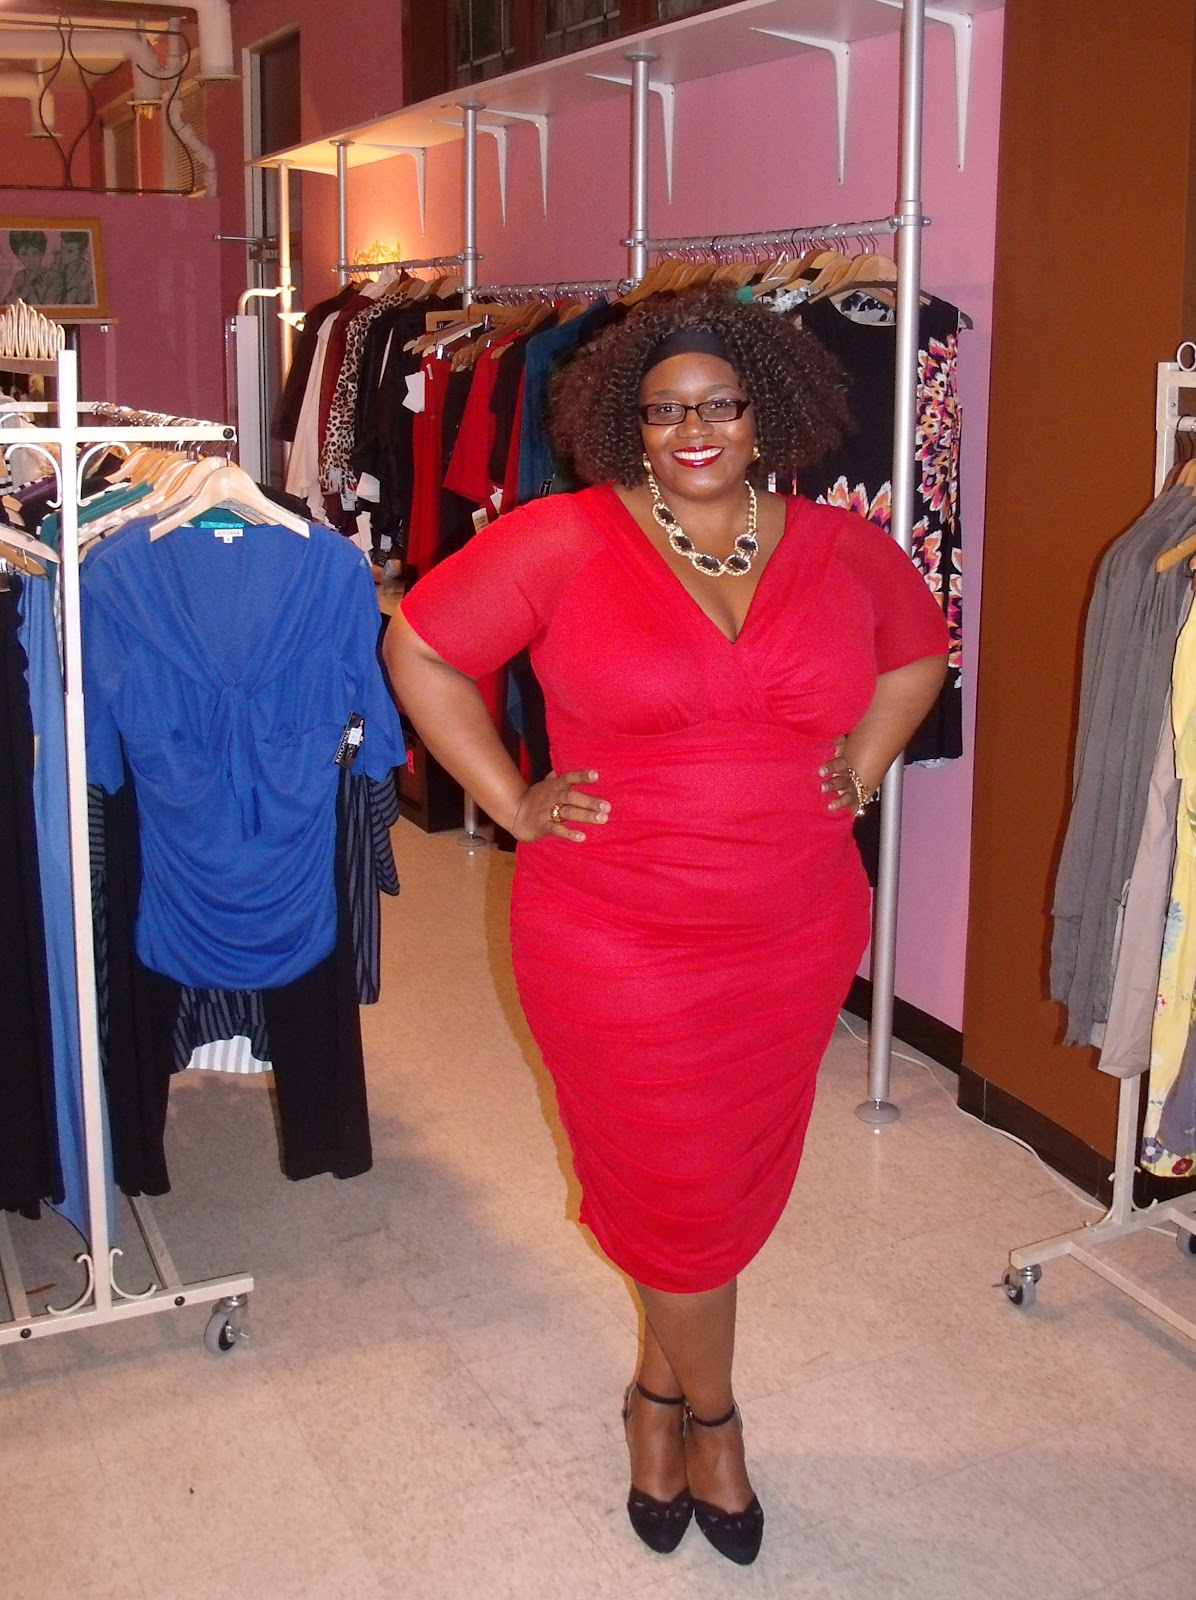 158e33b71a1 Plus Size Shopping Archives • Page 11 of 16 • Curvatude